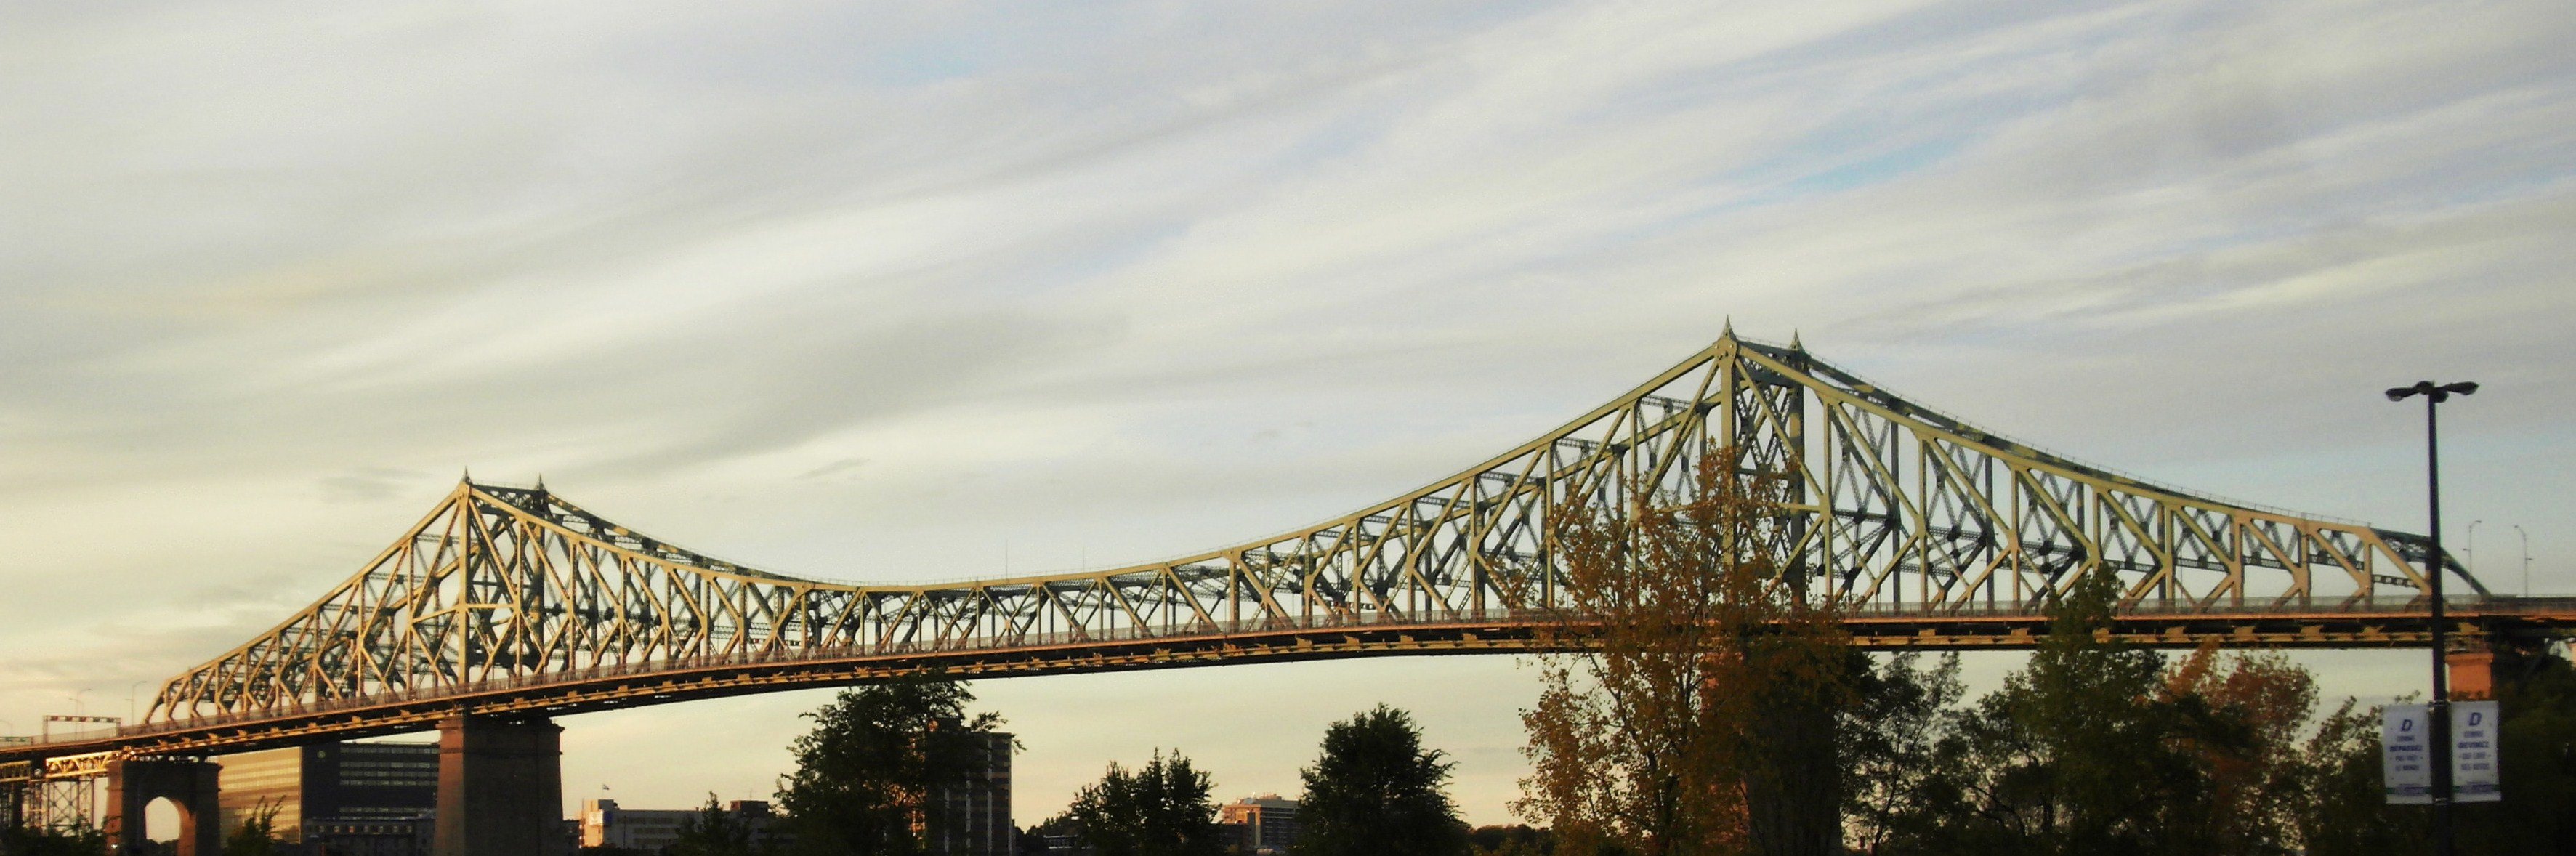 By Bénédicte Jourdier (Flickr: Pont Jacques Cartier) [CC BY 2.0 (https://creativecommons.org/licenses/by/2.0)], via Wikimedia Commons